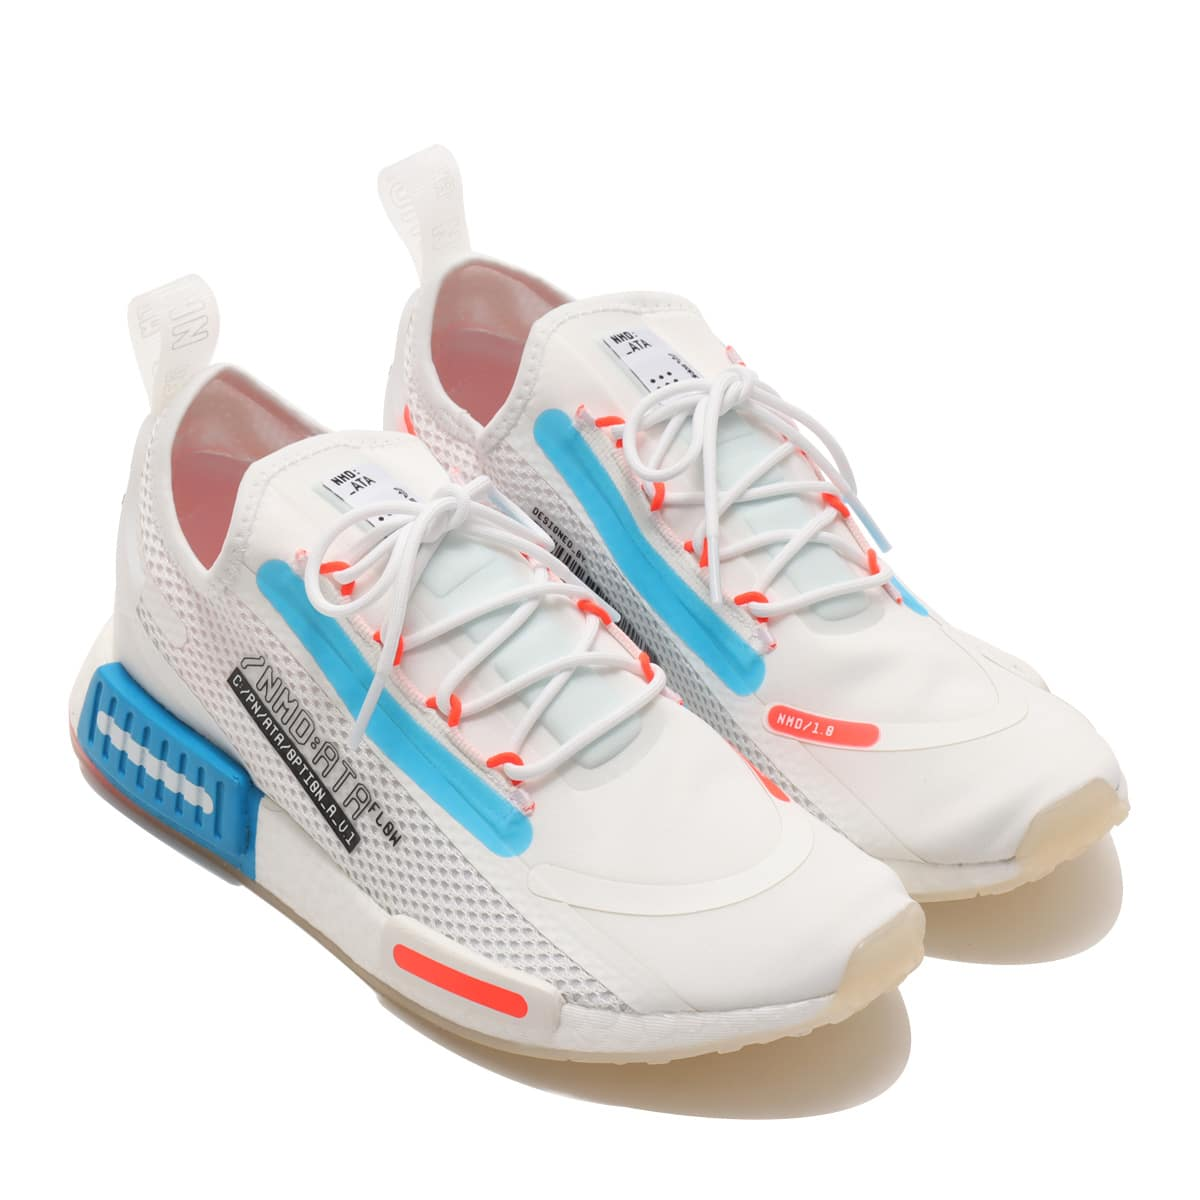 adidas NMD_R1 SPECTOO FOOTWEAR WHITE/SOLAR RED/SHOCK BLUE 21SS-I_photo_large